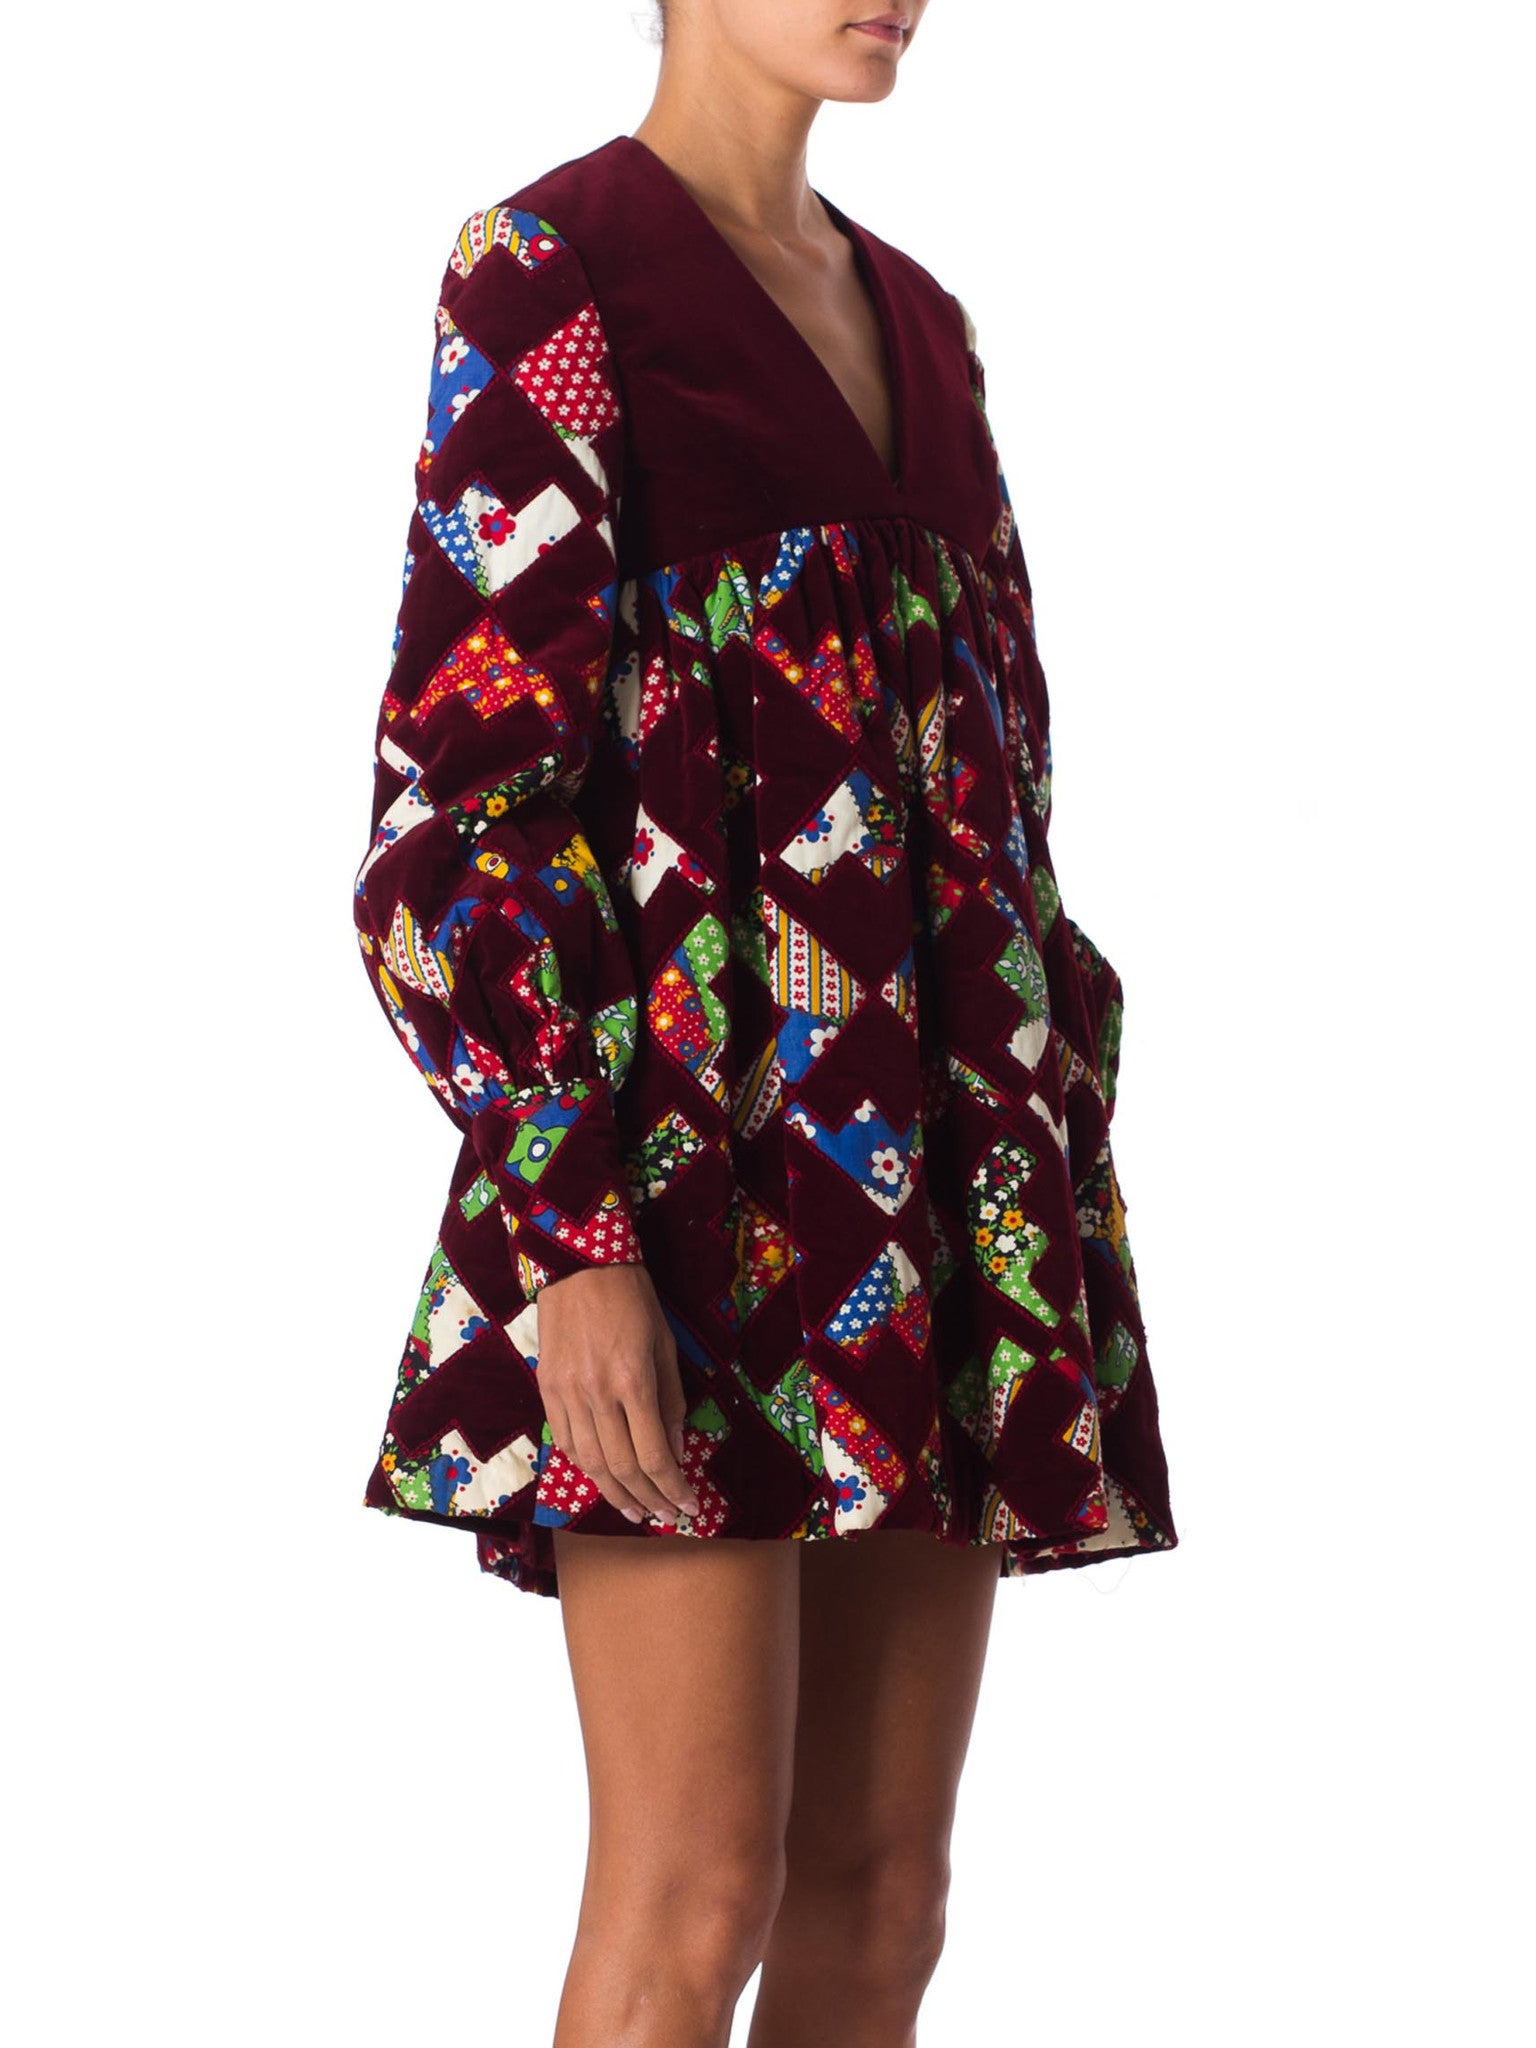 1960S GAYLE KIRKPATRICK Cotton Velvet Patchwork Mini Dress With Sleeves